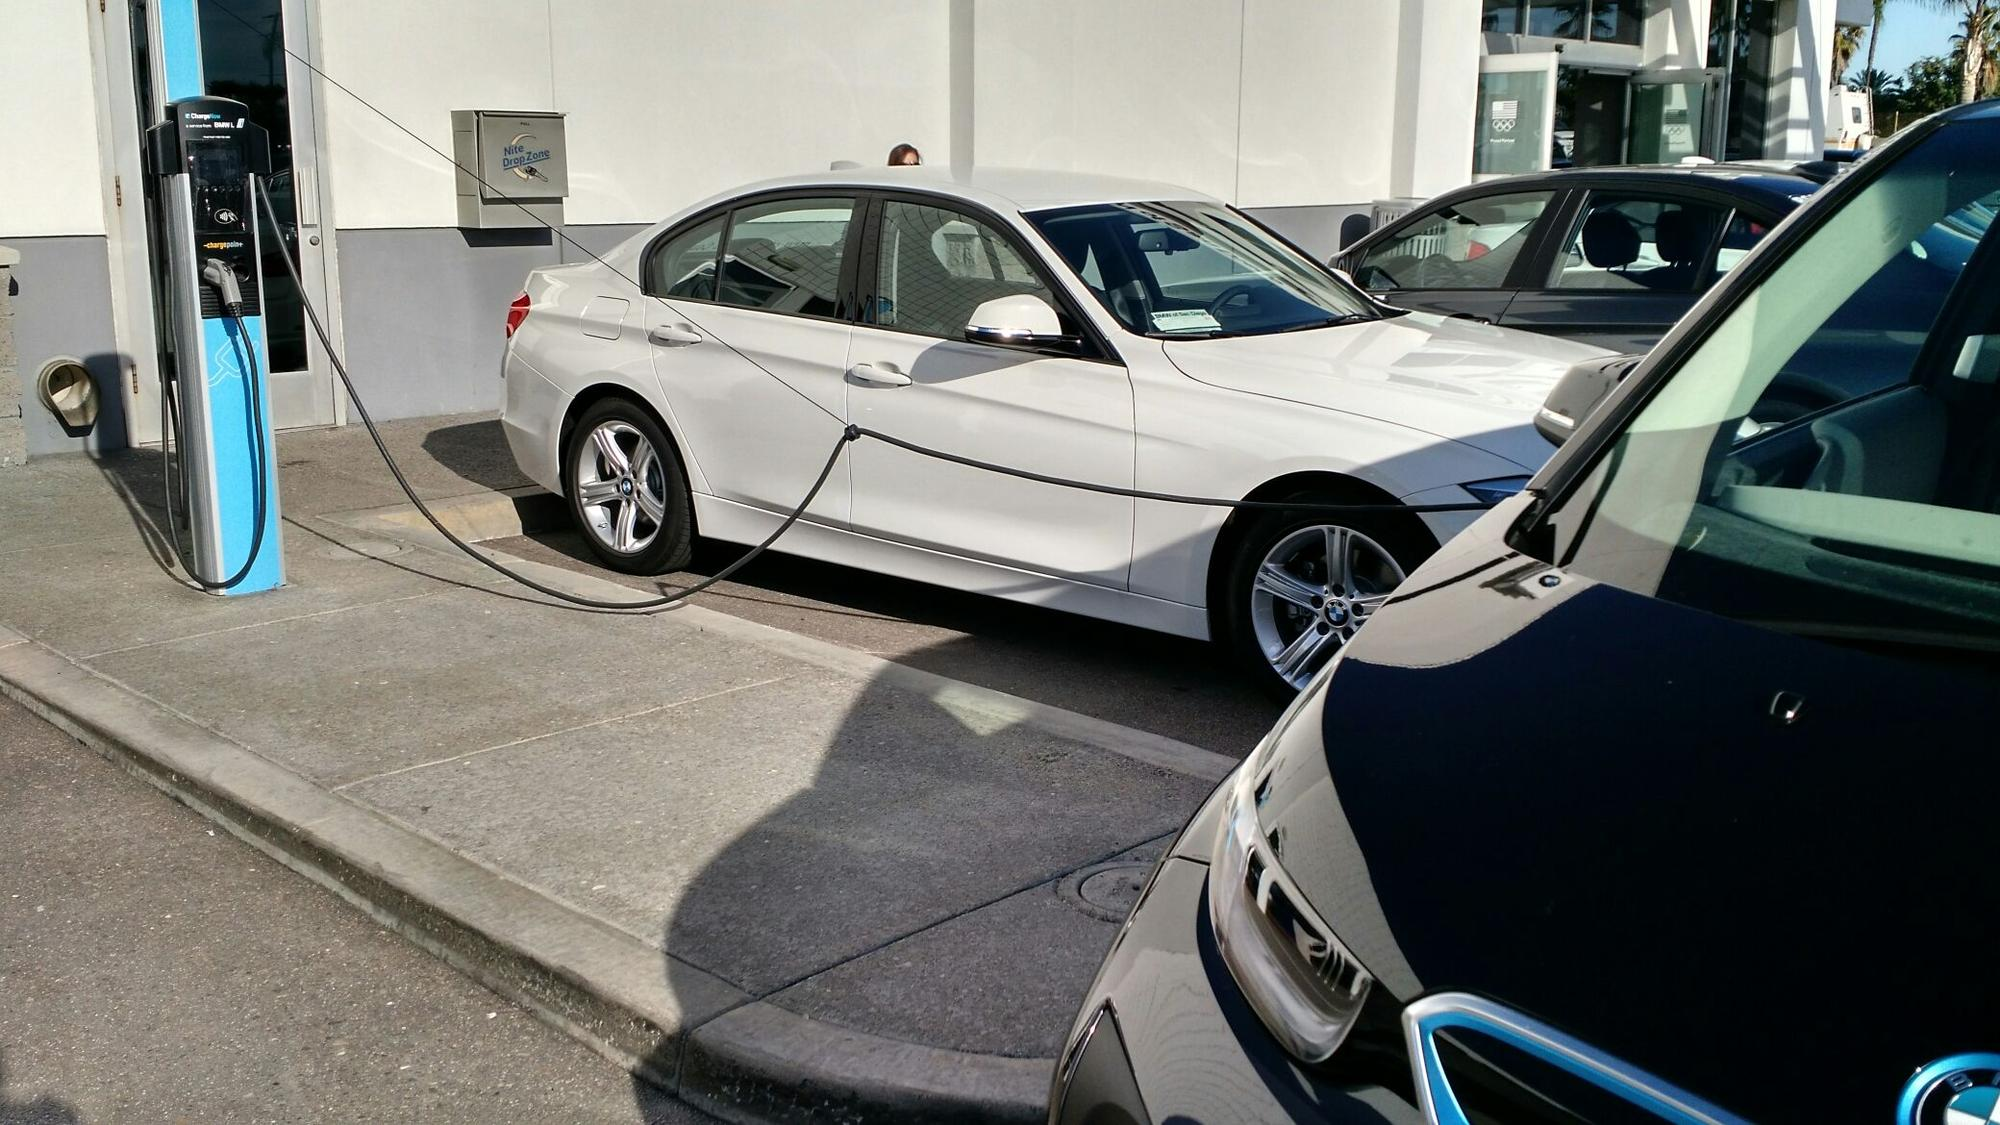 Bmw Of San Diego Free Electric Car Charging 8 Check Ins 2 Photos